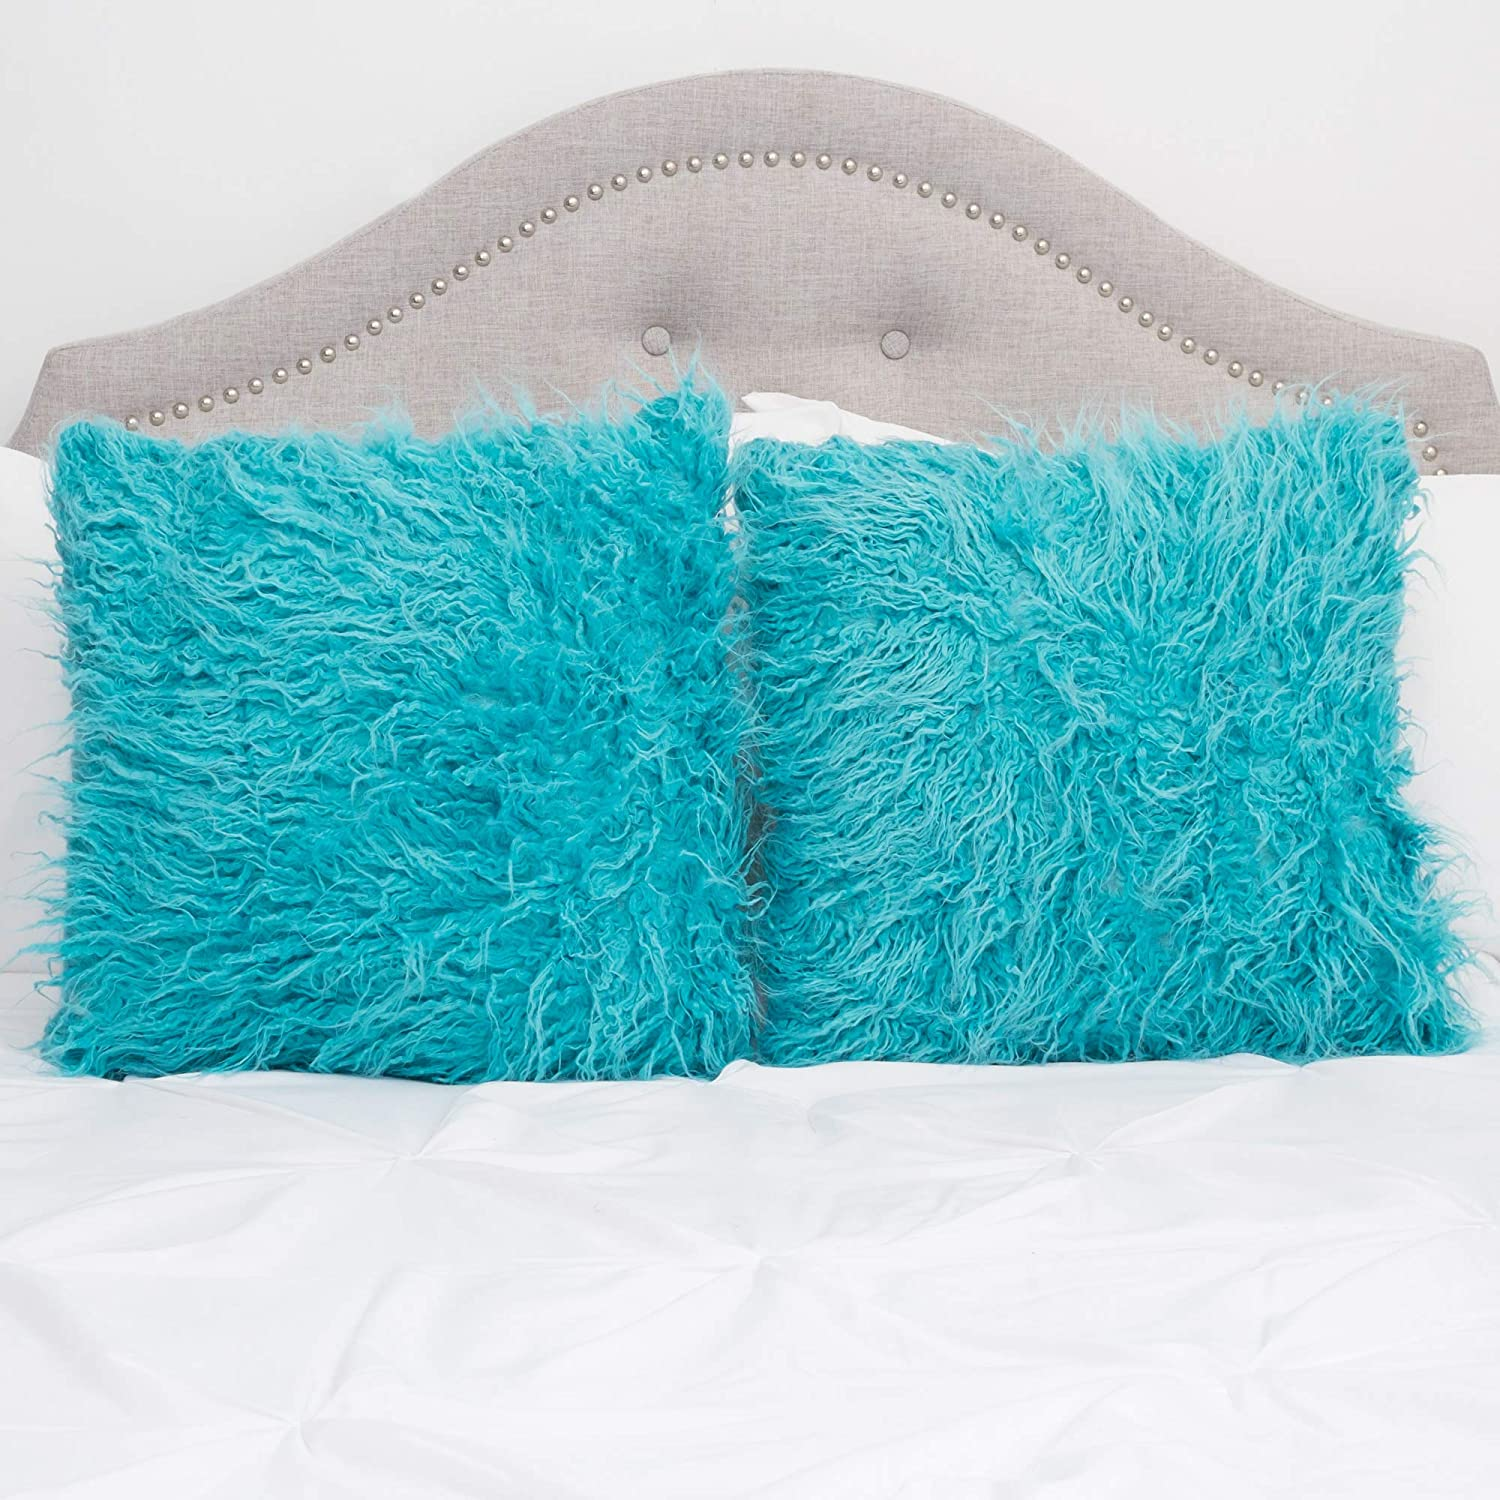 Sweet Home Collection Decorative Throw Pillows Set of 2 Mongolian Long Hair Faux Fur Accent Soft and Fuzzy Cushion, Turquoise Blue